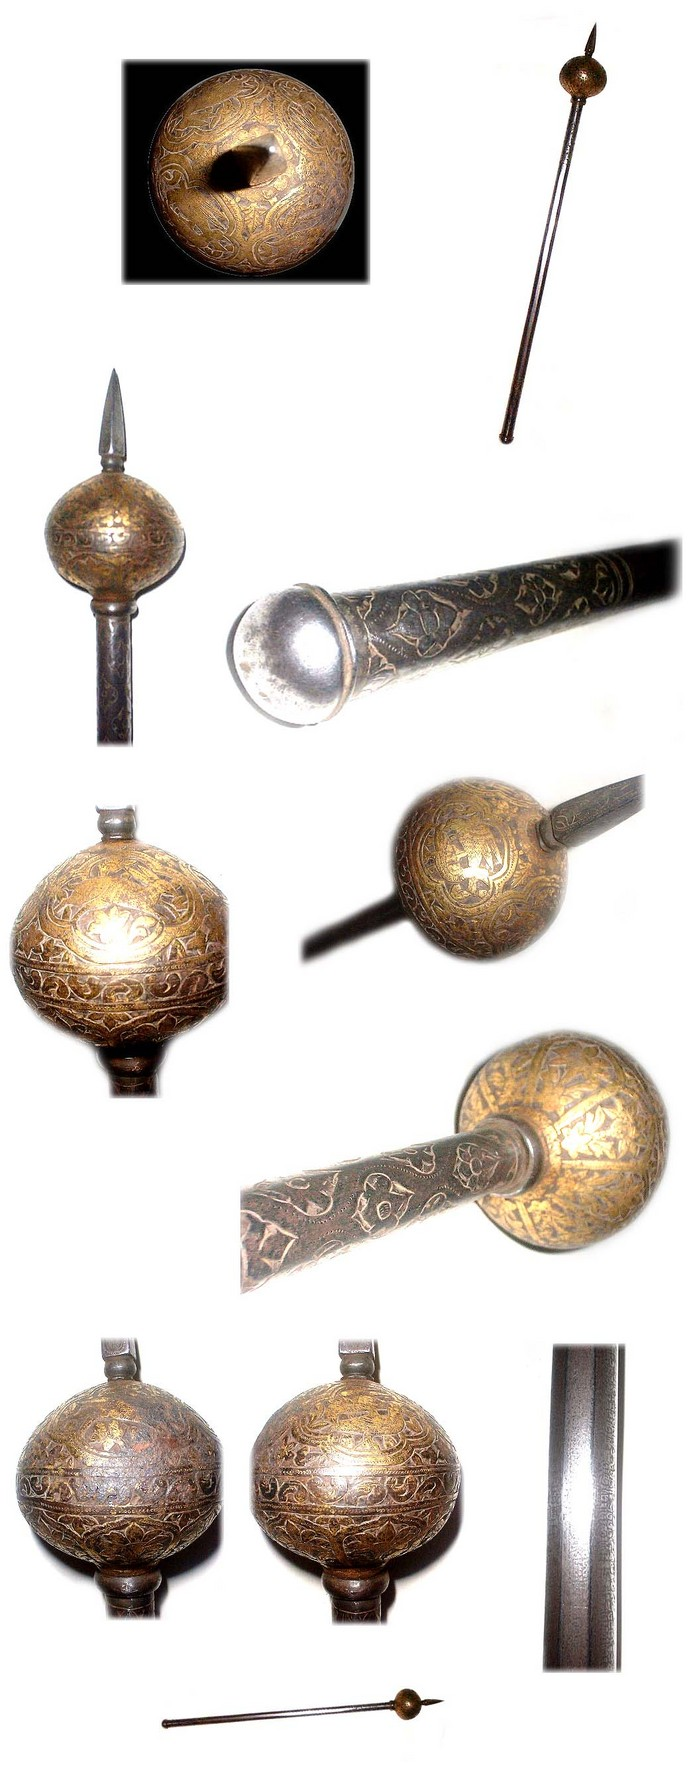 Antique Gilt Steel Persian Mace with chiselled decoration 19th century